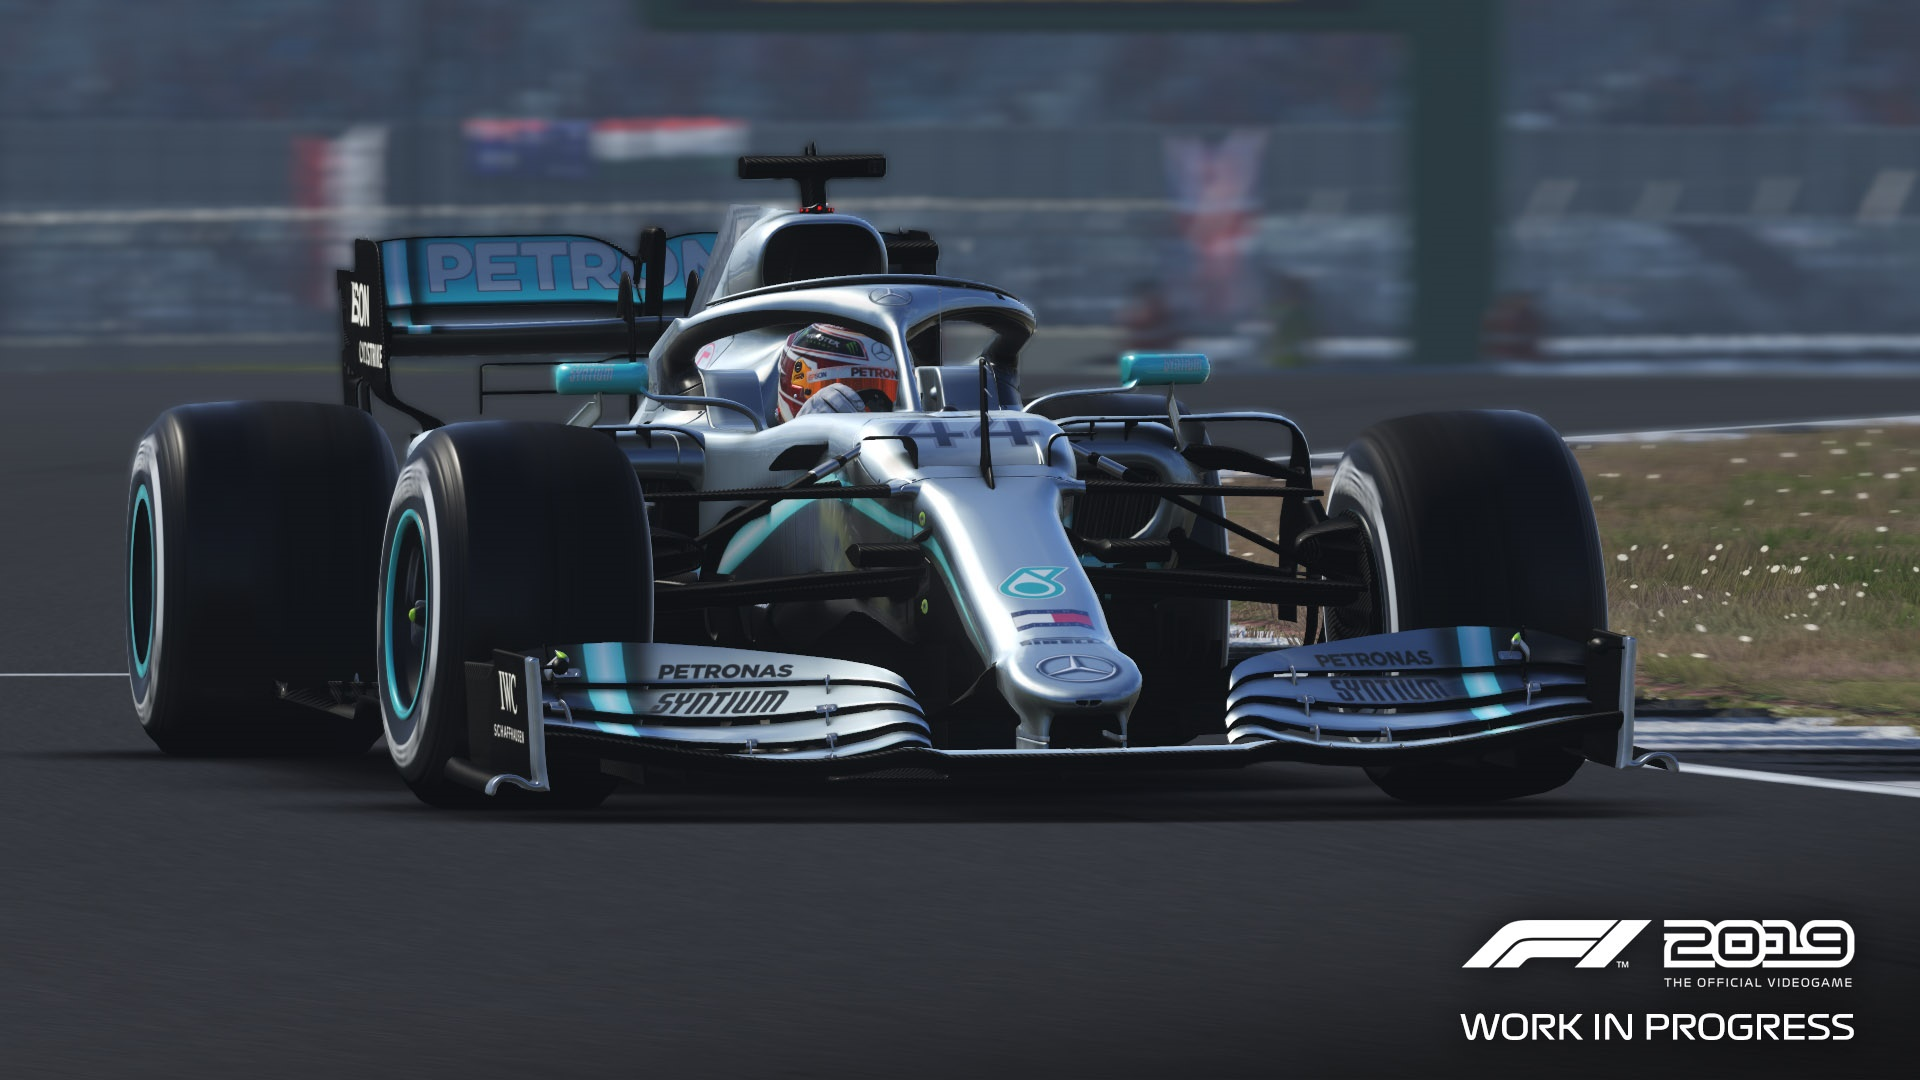 Скриншот 0 - F1 2019 Legends Edition+АВТОАКТИВАЦ+ЛИЦЕНЗИЯ+ГАРАНТИЯ